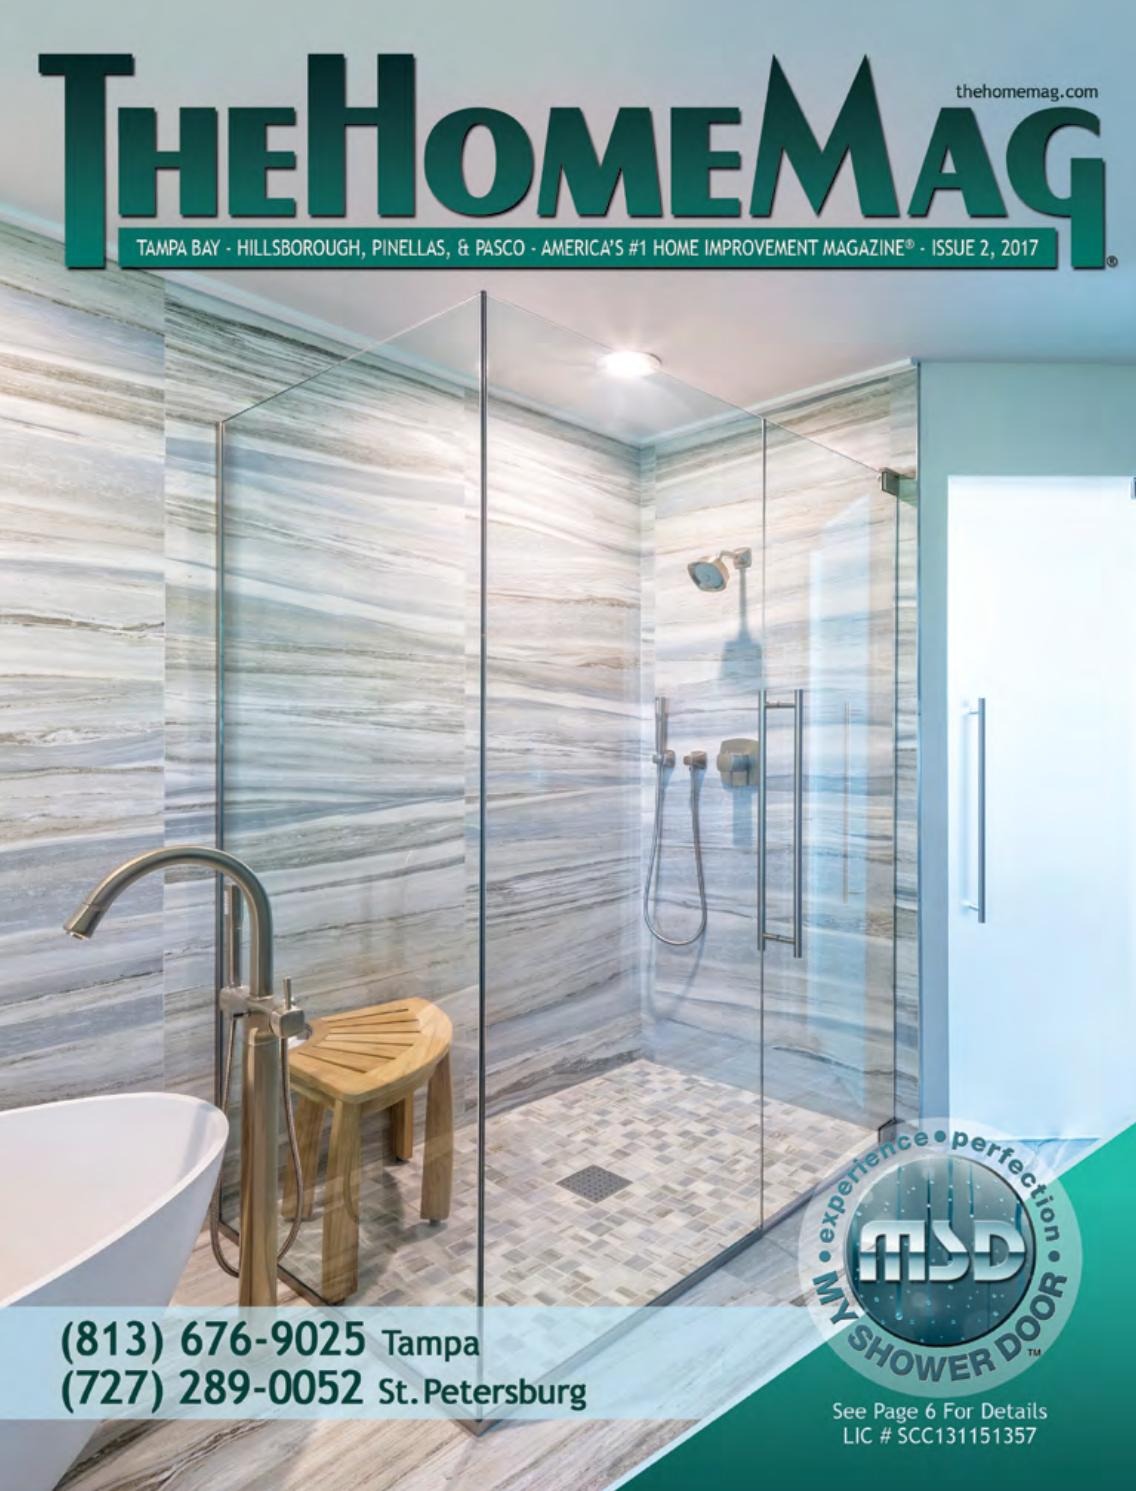 TheHomeMag Tampa E February 2017 by TheHomeMag - issuu